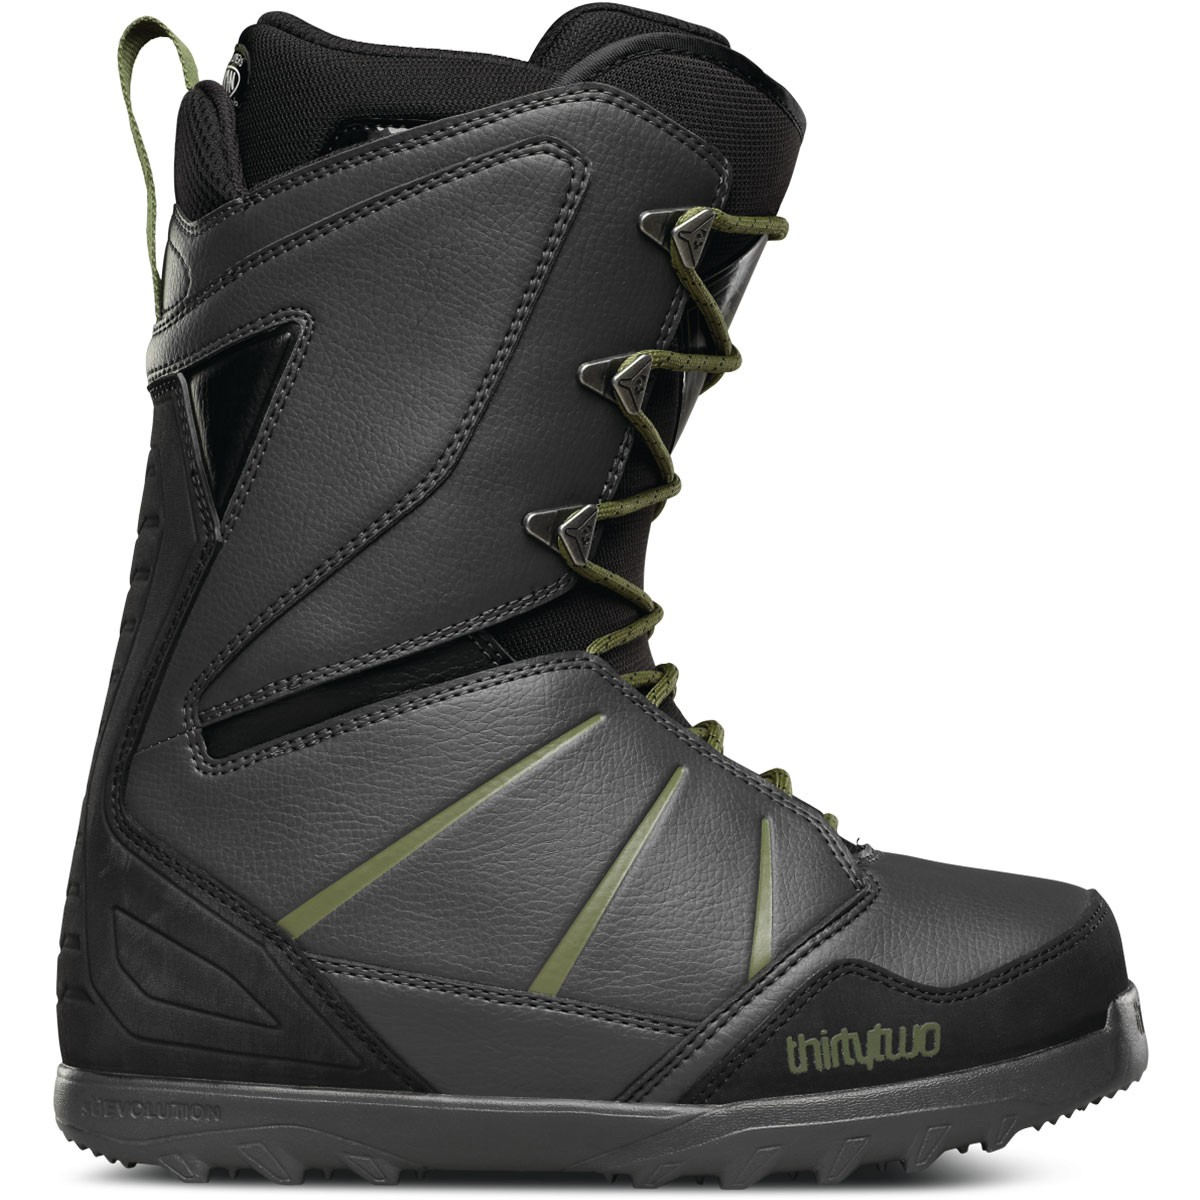 Thirty Two Lashed Bradshaw 2016 Snowboard Boots - Dark Grey